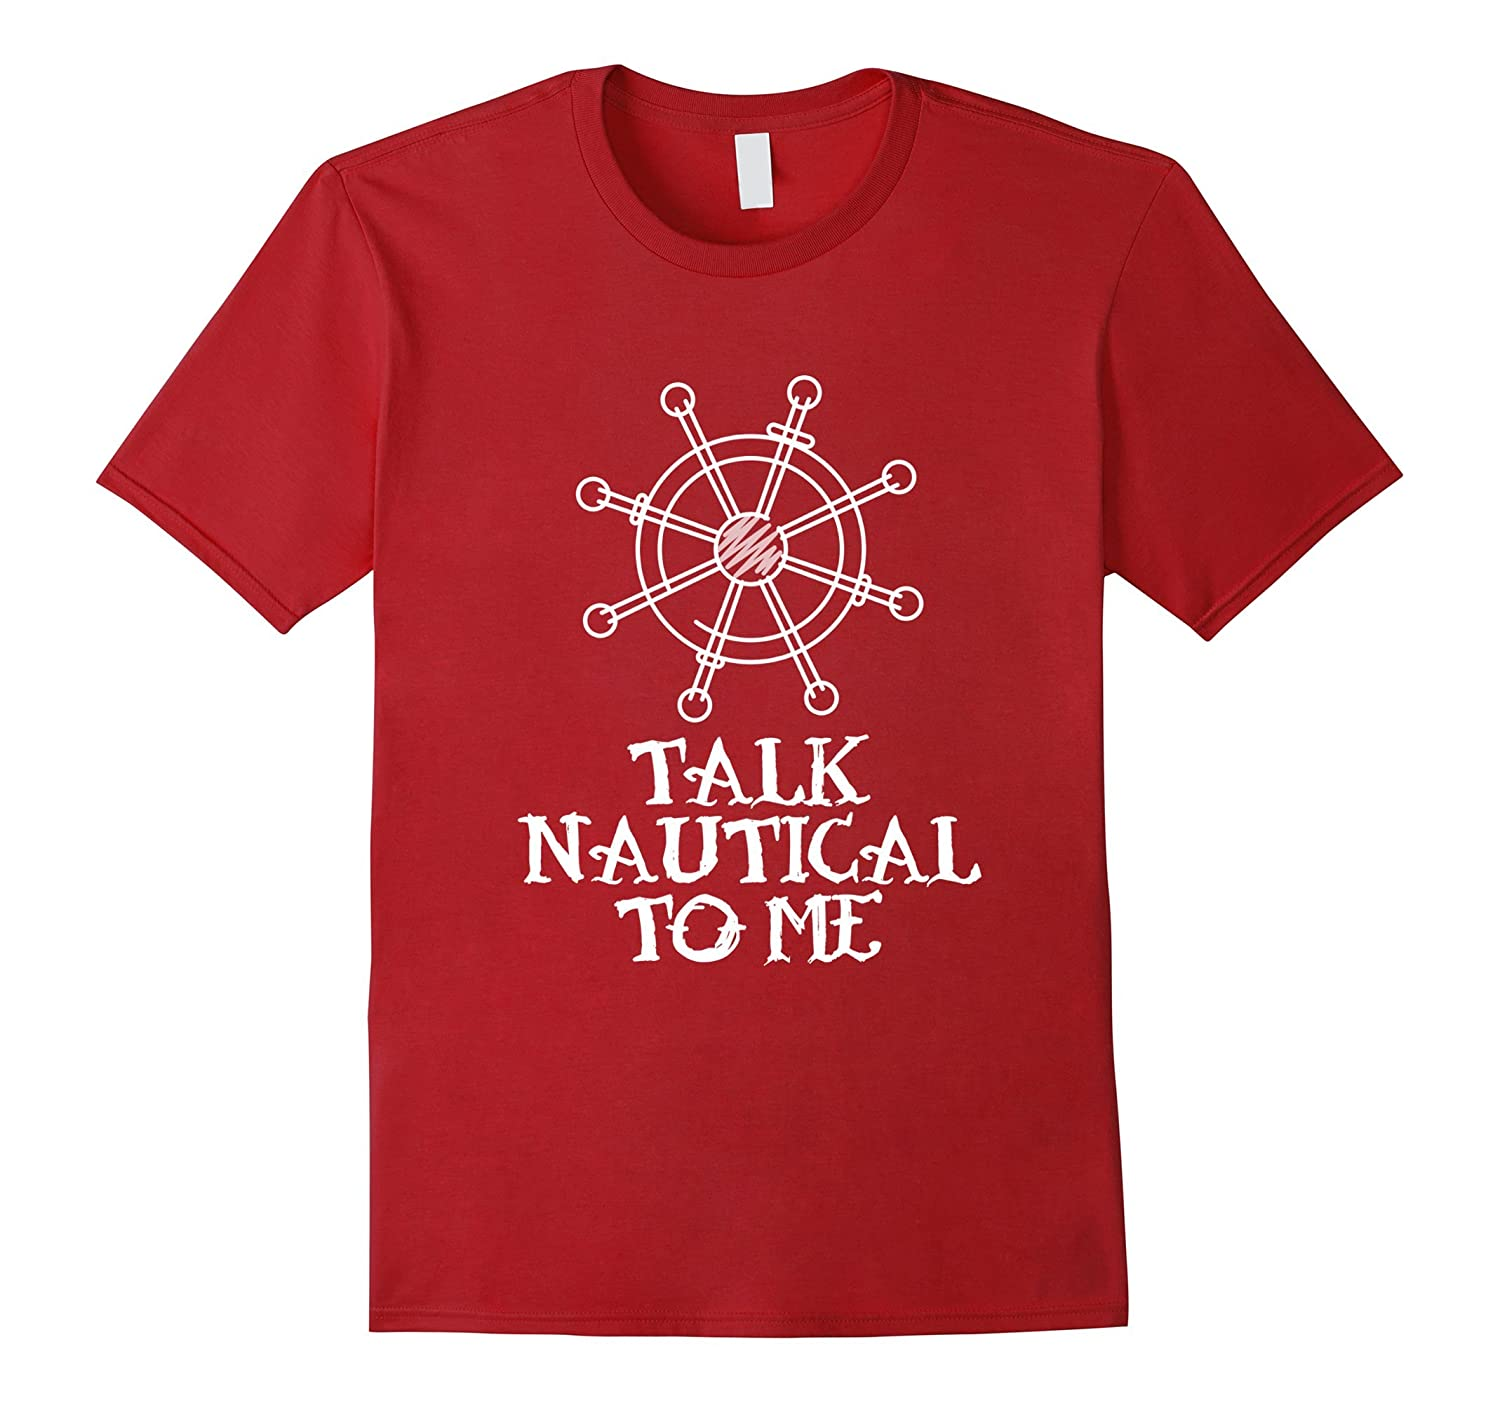 f791df36d Talk Nautical To Me Funny Sailing Crusing Yacht T-Shirt ...